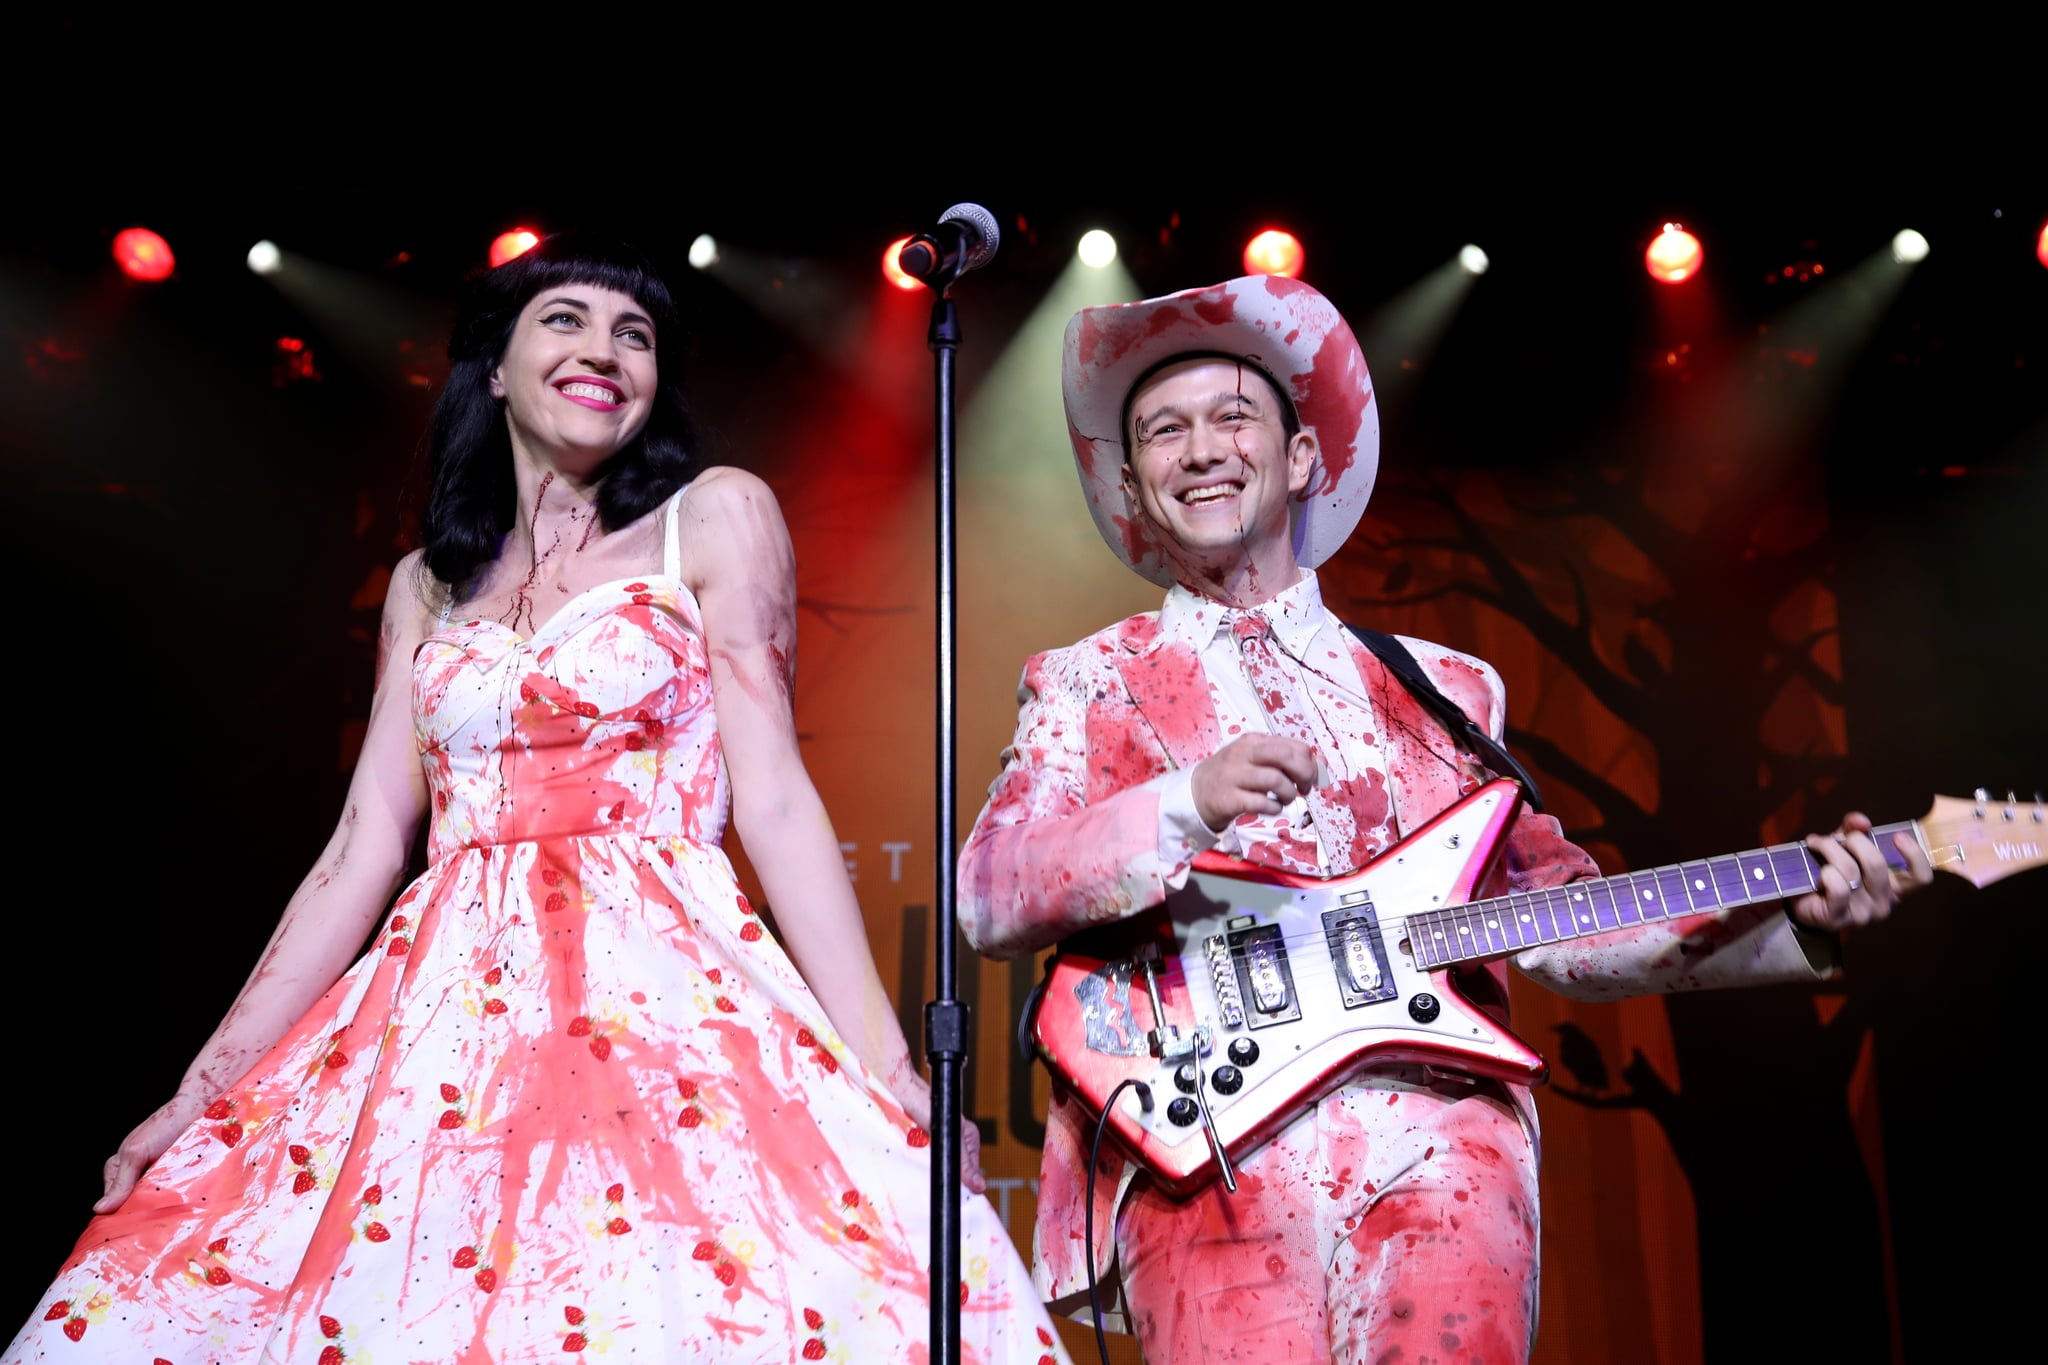 LOS ANGELES, CA - OCTOBER 15:  Actor Joseph Gordon-Levitt (R) and Tasha McCauley perform onstage during Hilarity for Charity's 5th Annual Los Angeles Variety Show: Seth Rogen's Halloween at Hollywood Palladium on October 15, 2016 in Los Angeles, California.  (Photo by Randy Shropshire/Getty Images)